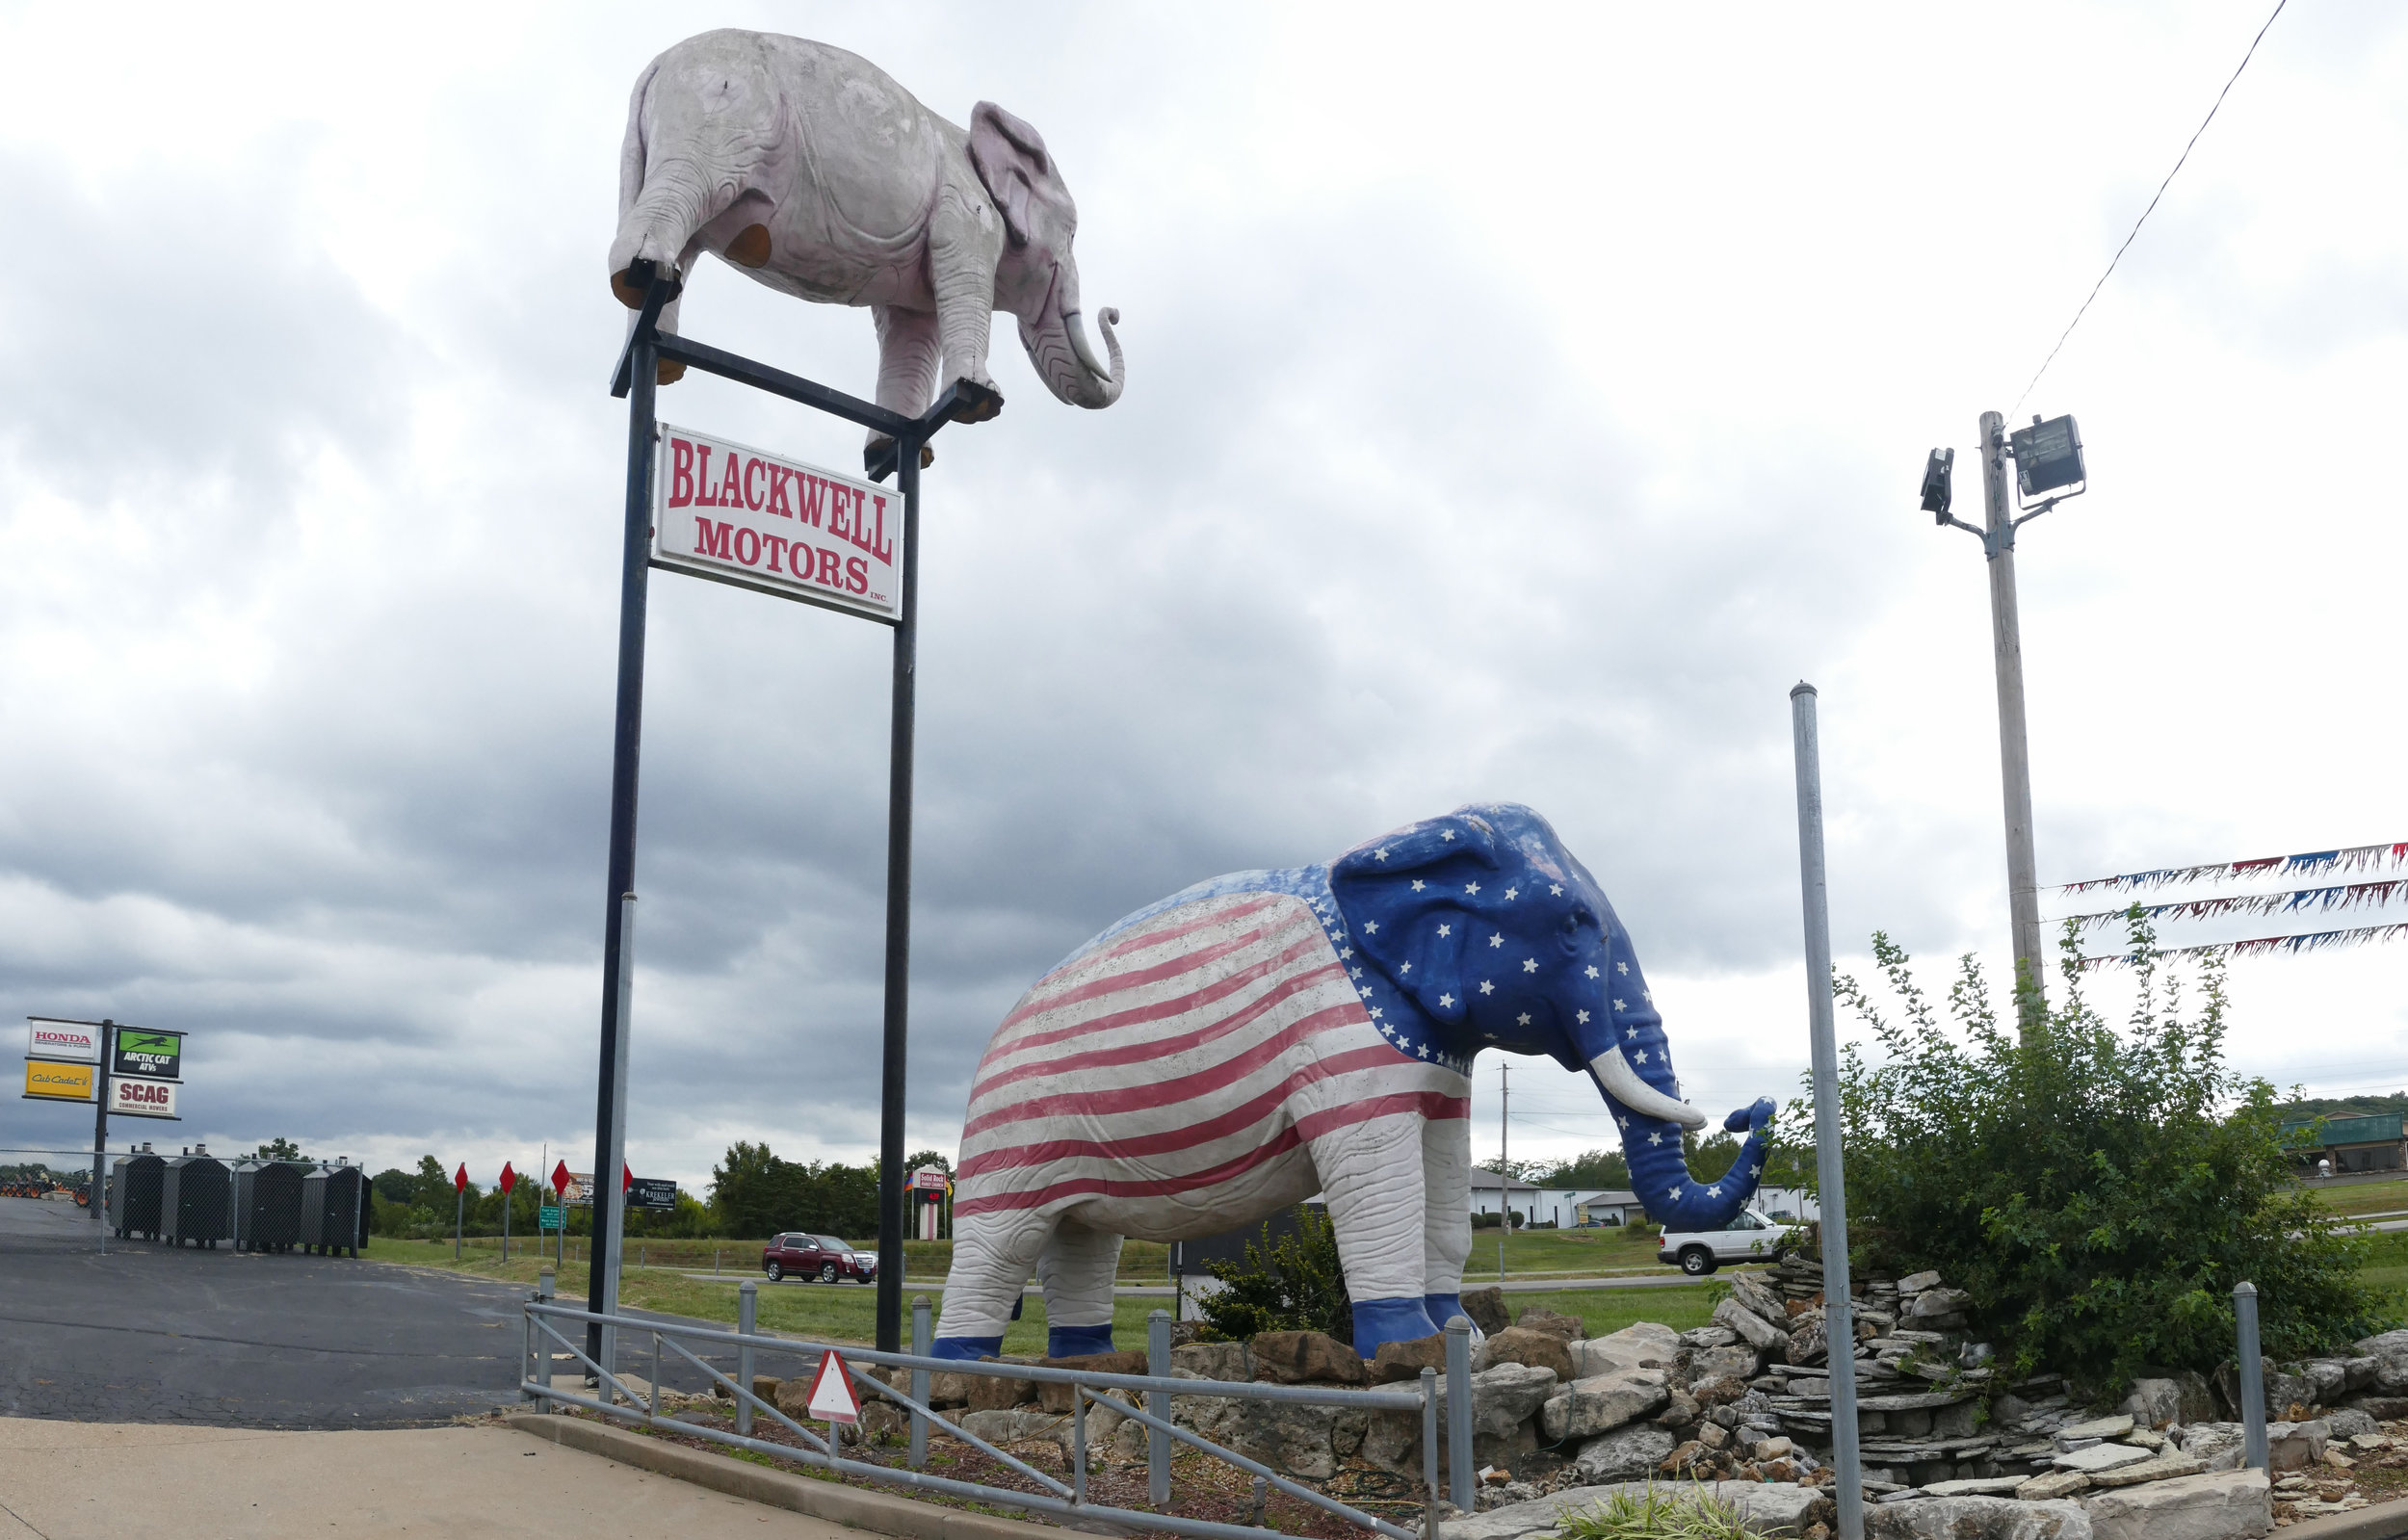 I was happy to visit Missouri's not-yet famous Blackwell Motors Elephants.